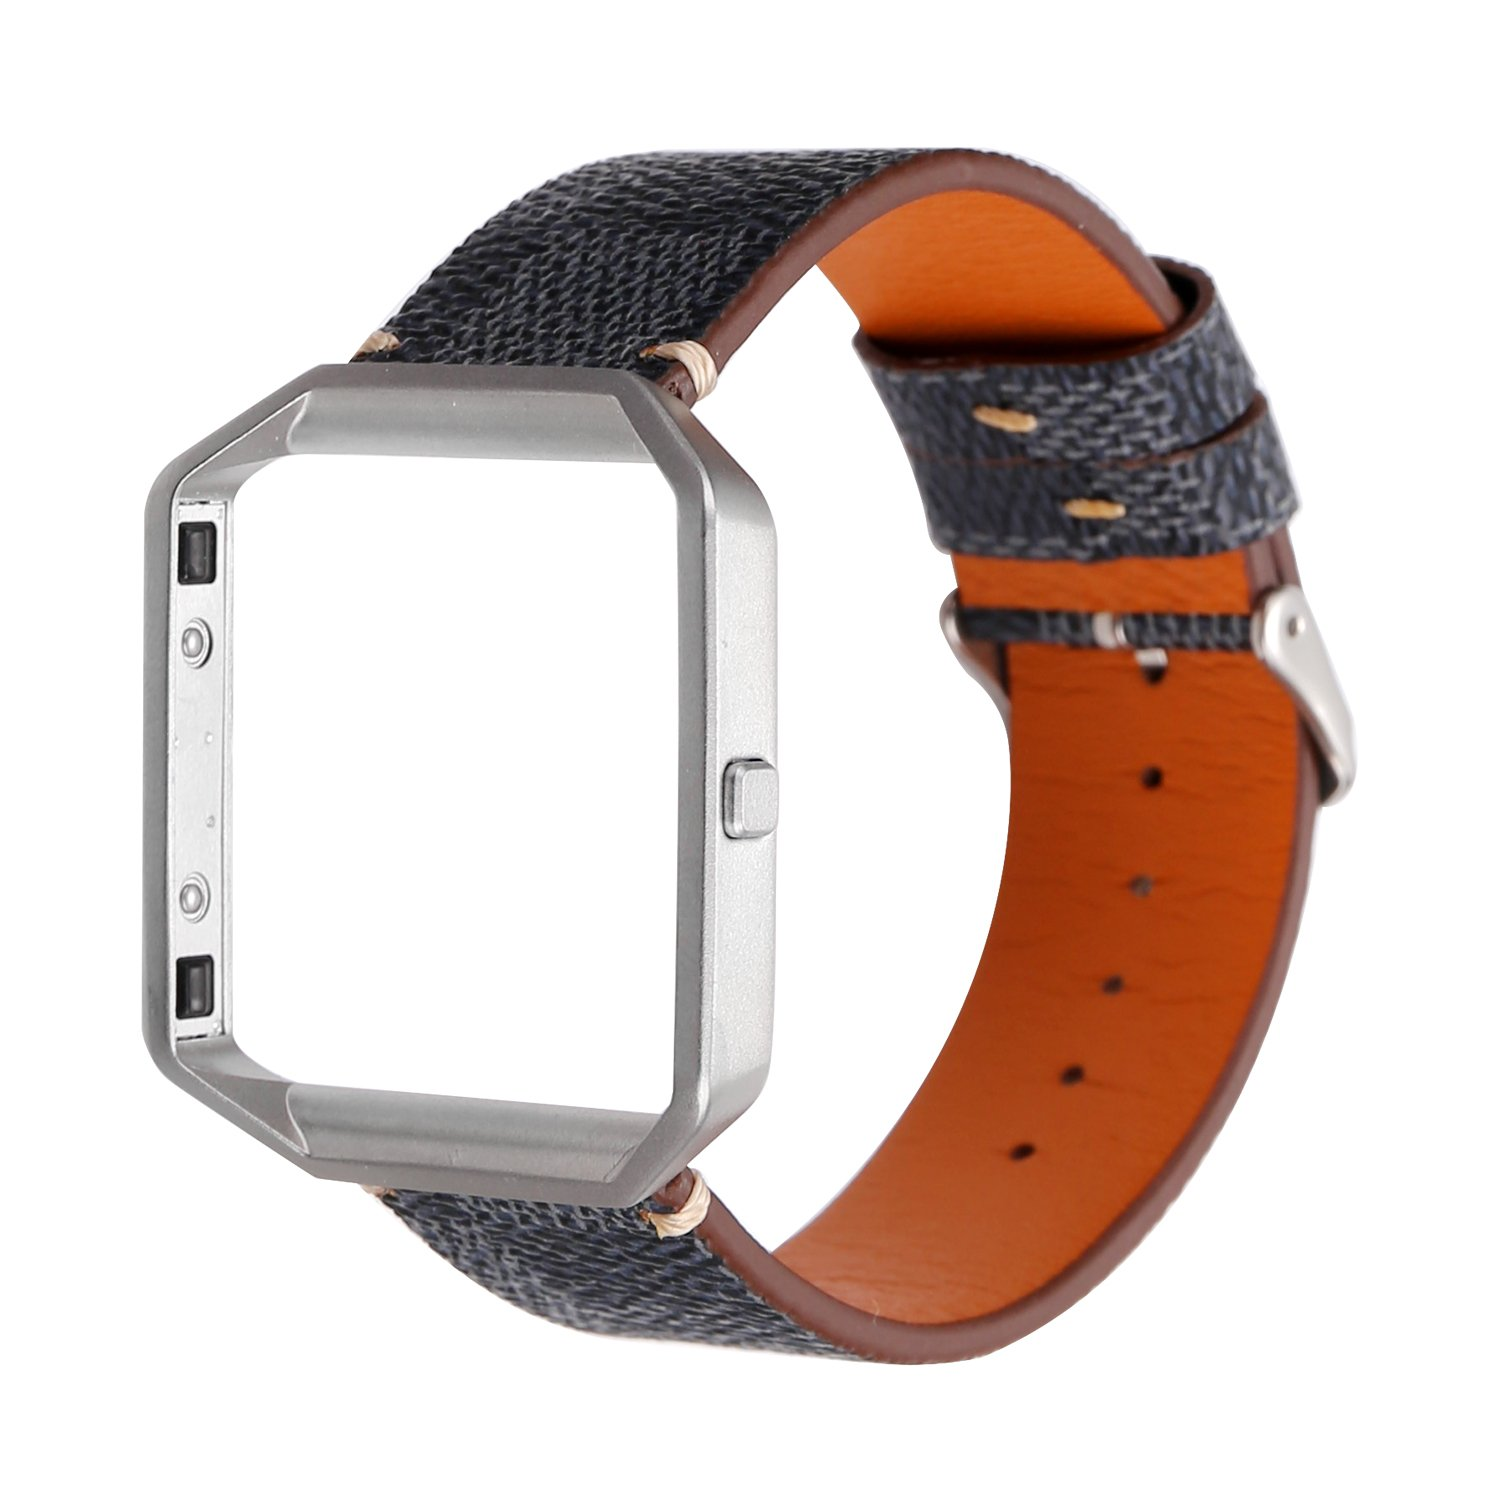 MeShow TCSHOW Soft PU Leather Plaid Tartan Style Replacement Strap Wrist Band Metal Adapter Compatible Fitbit Blaze (F) by MeShow